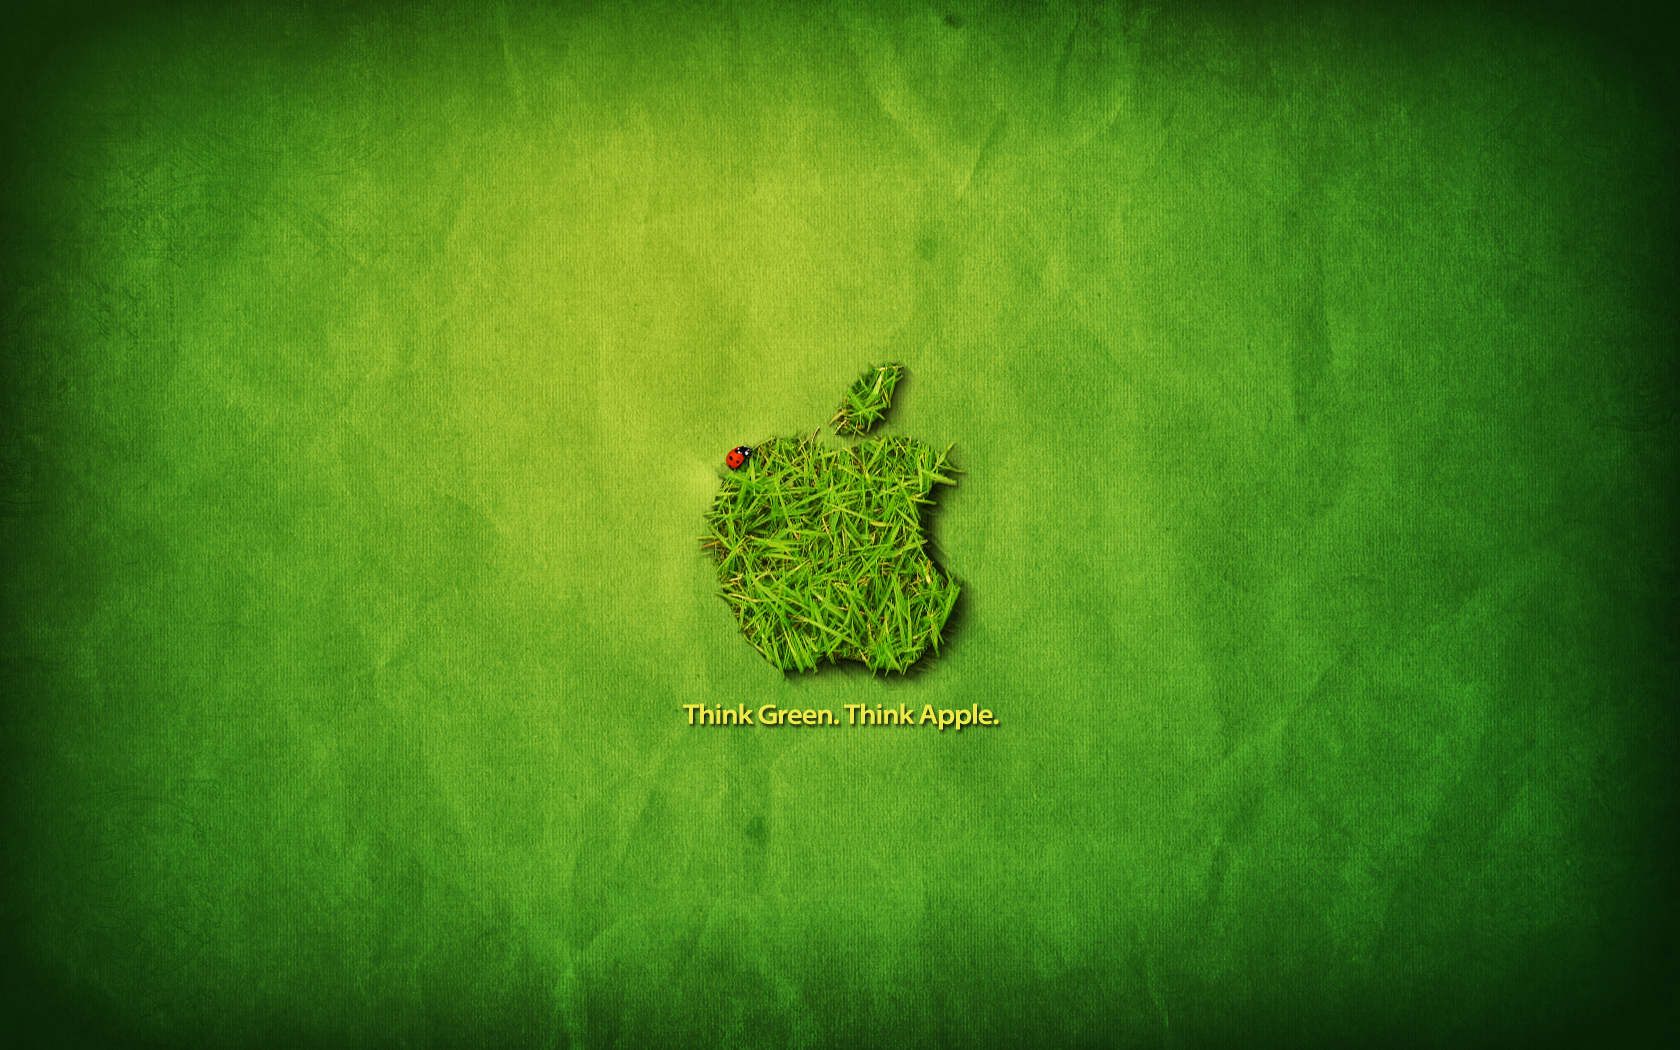 apple___think_green_by_g2k556